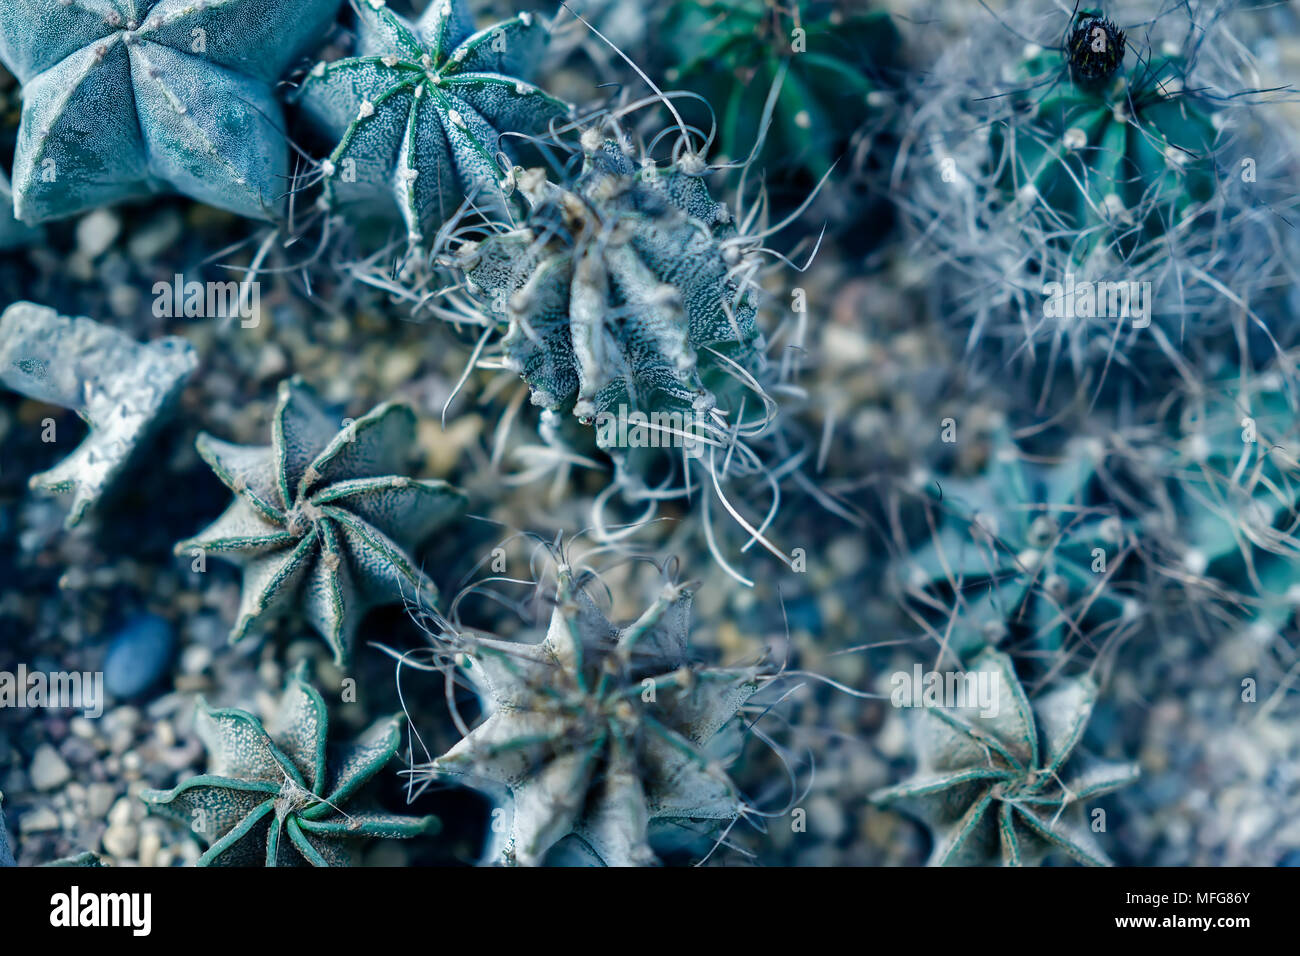 Assortment of varied succulent plants, cactuses. Modern fashionable pattern texture, exotic spiny background - Stock Image